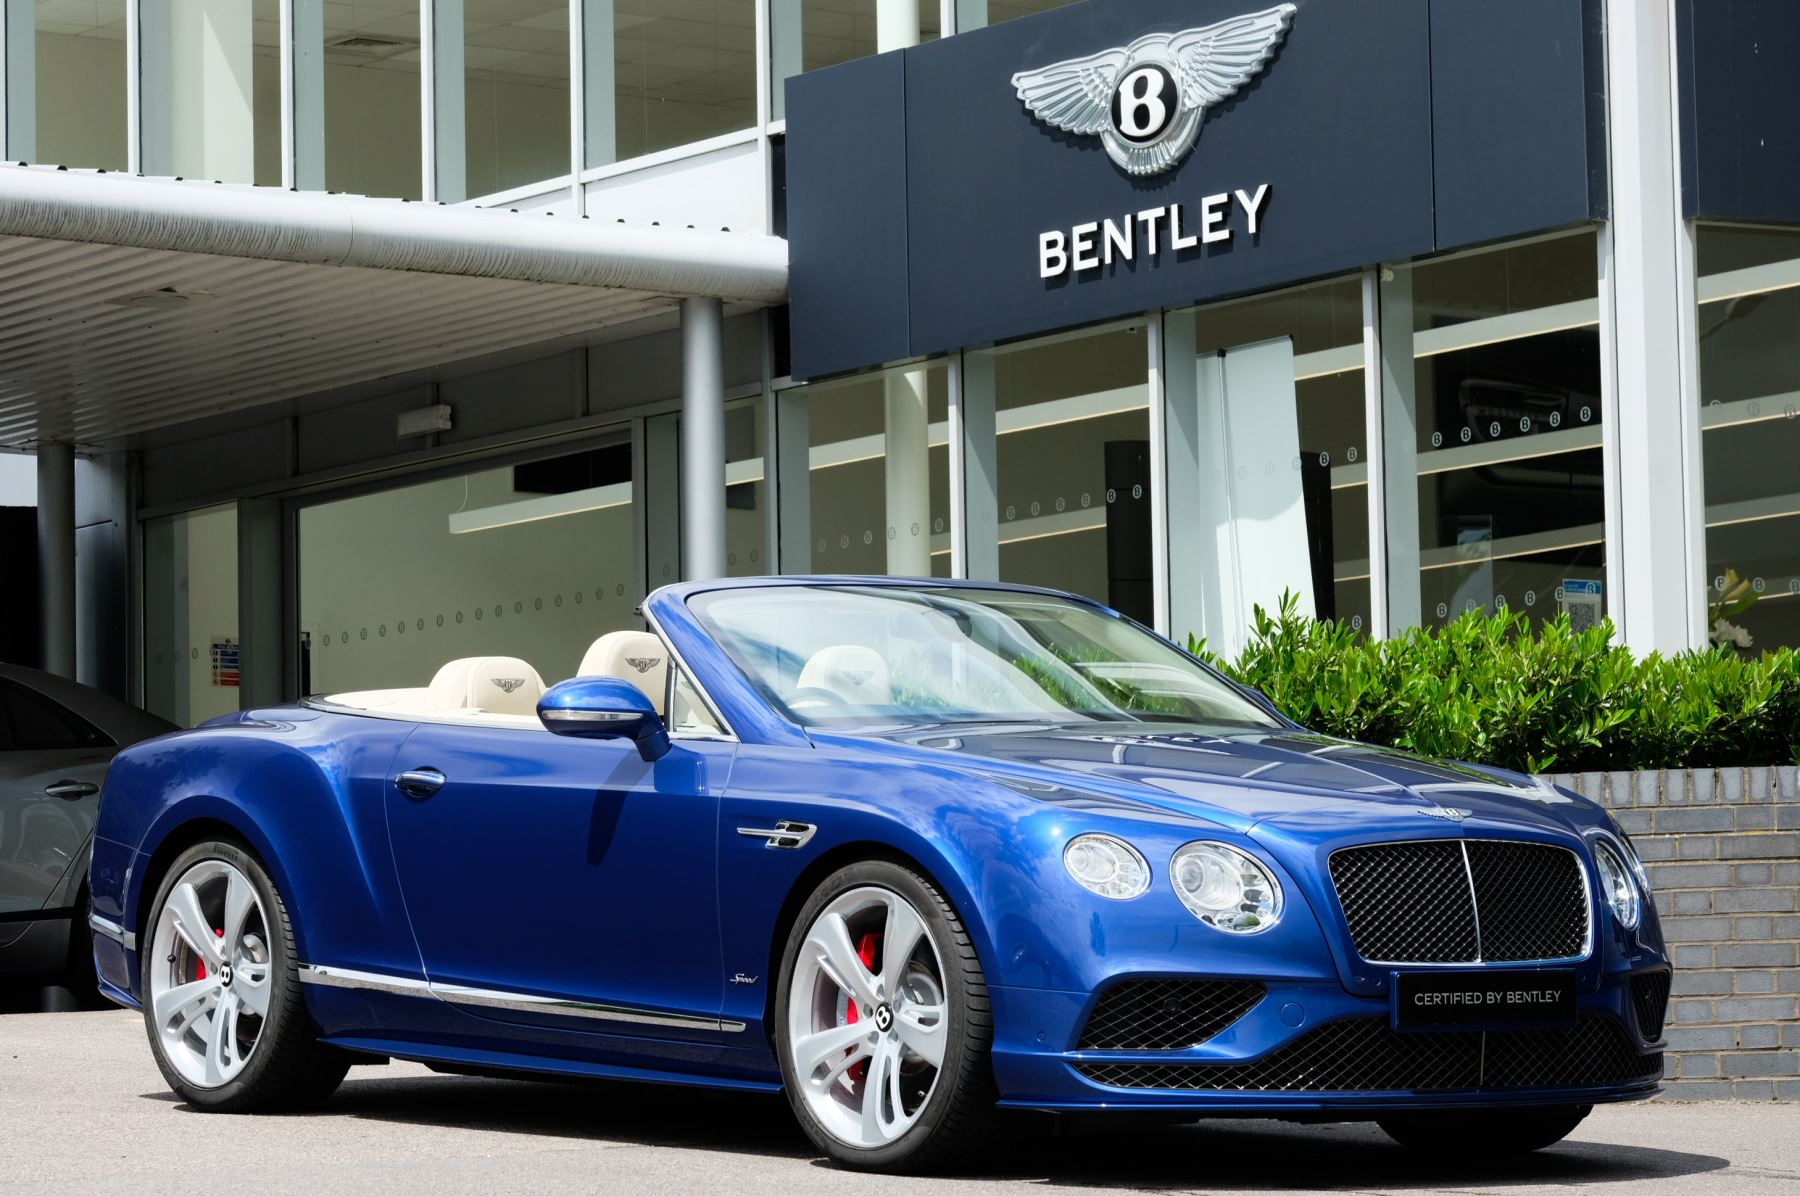 Bentley Continental GTC 6.0 W12 [635] Speed - 21 Inch Directional Sports Alloy Wheels Automatic 2 door Convertible